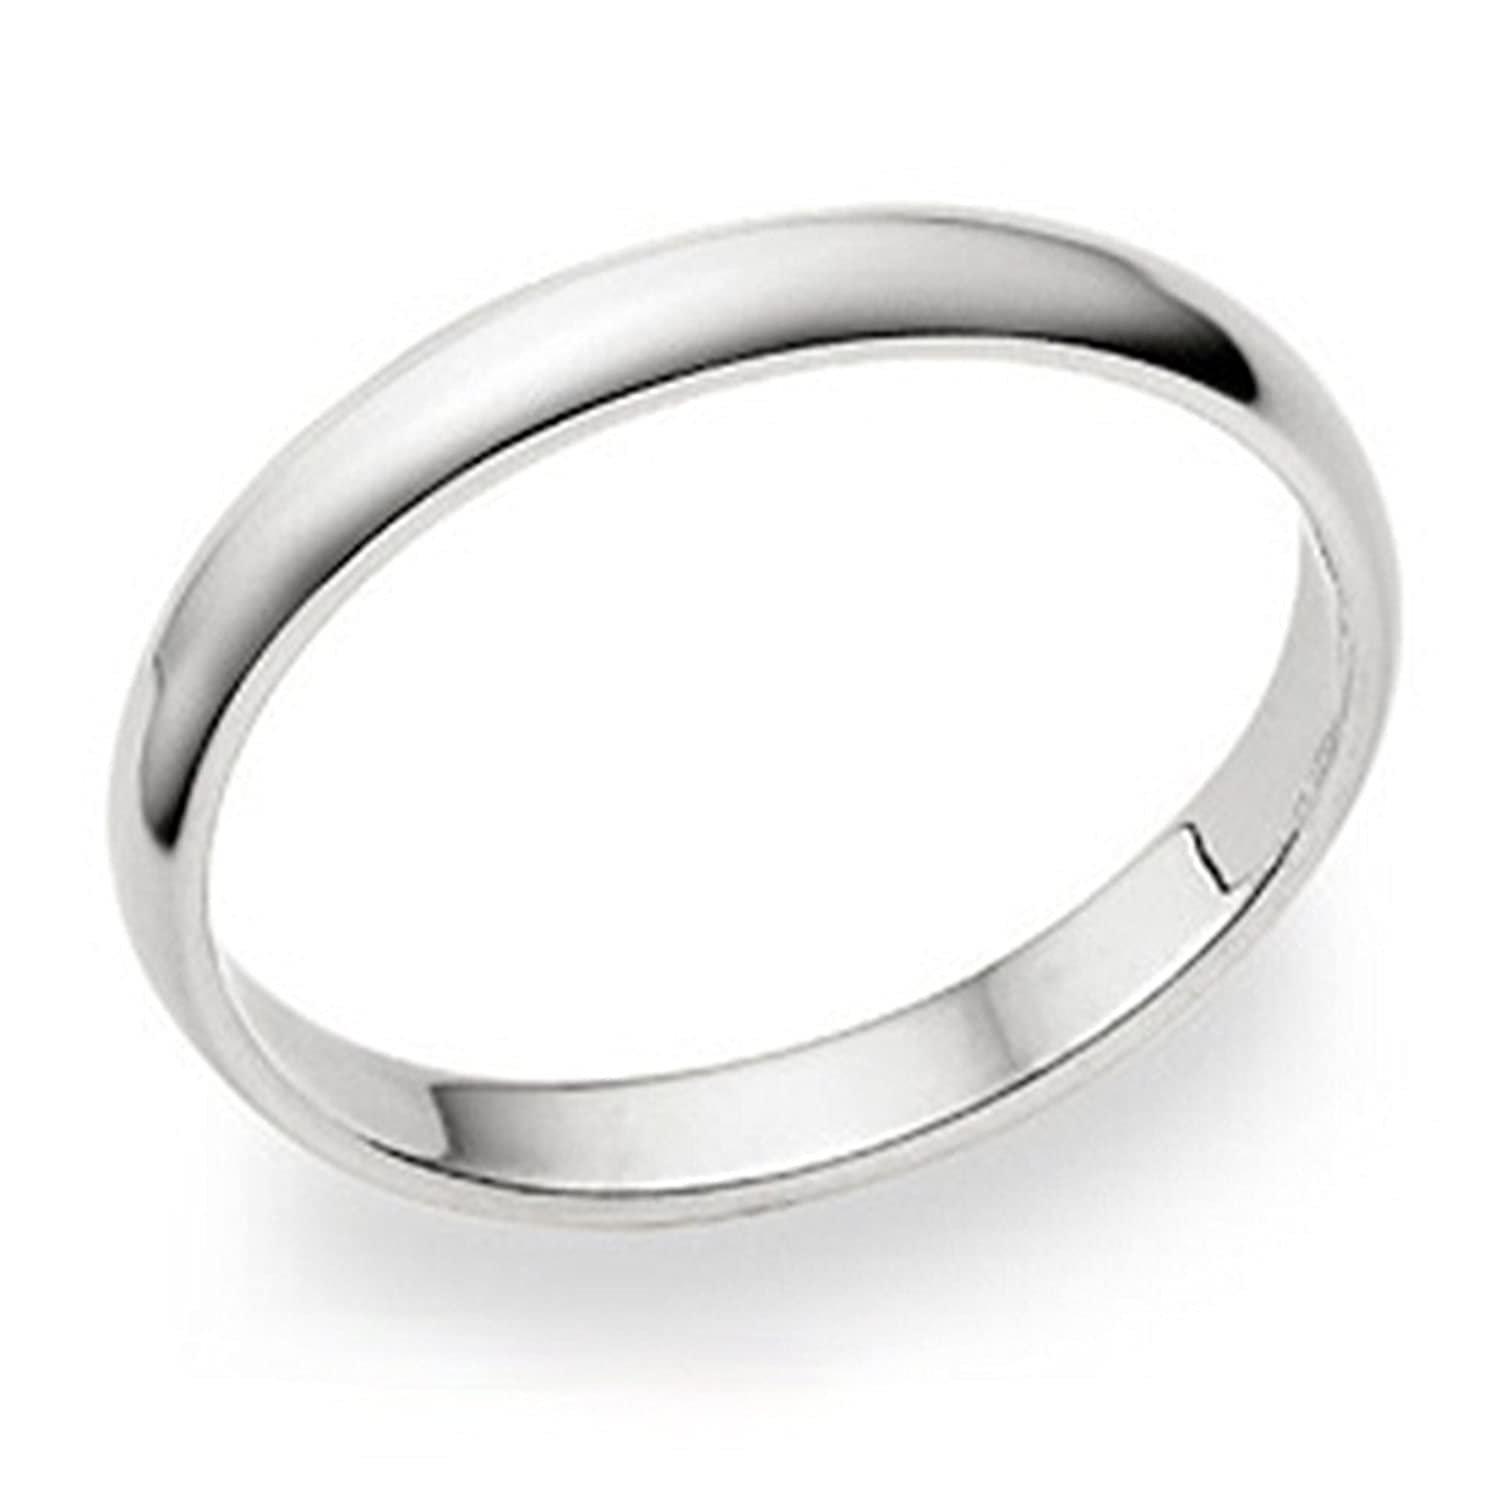 oxford amazon available rings wedding ivy com dp men s comfort sizes plain ring titanium fit band